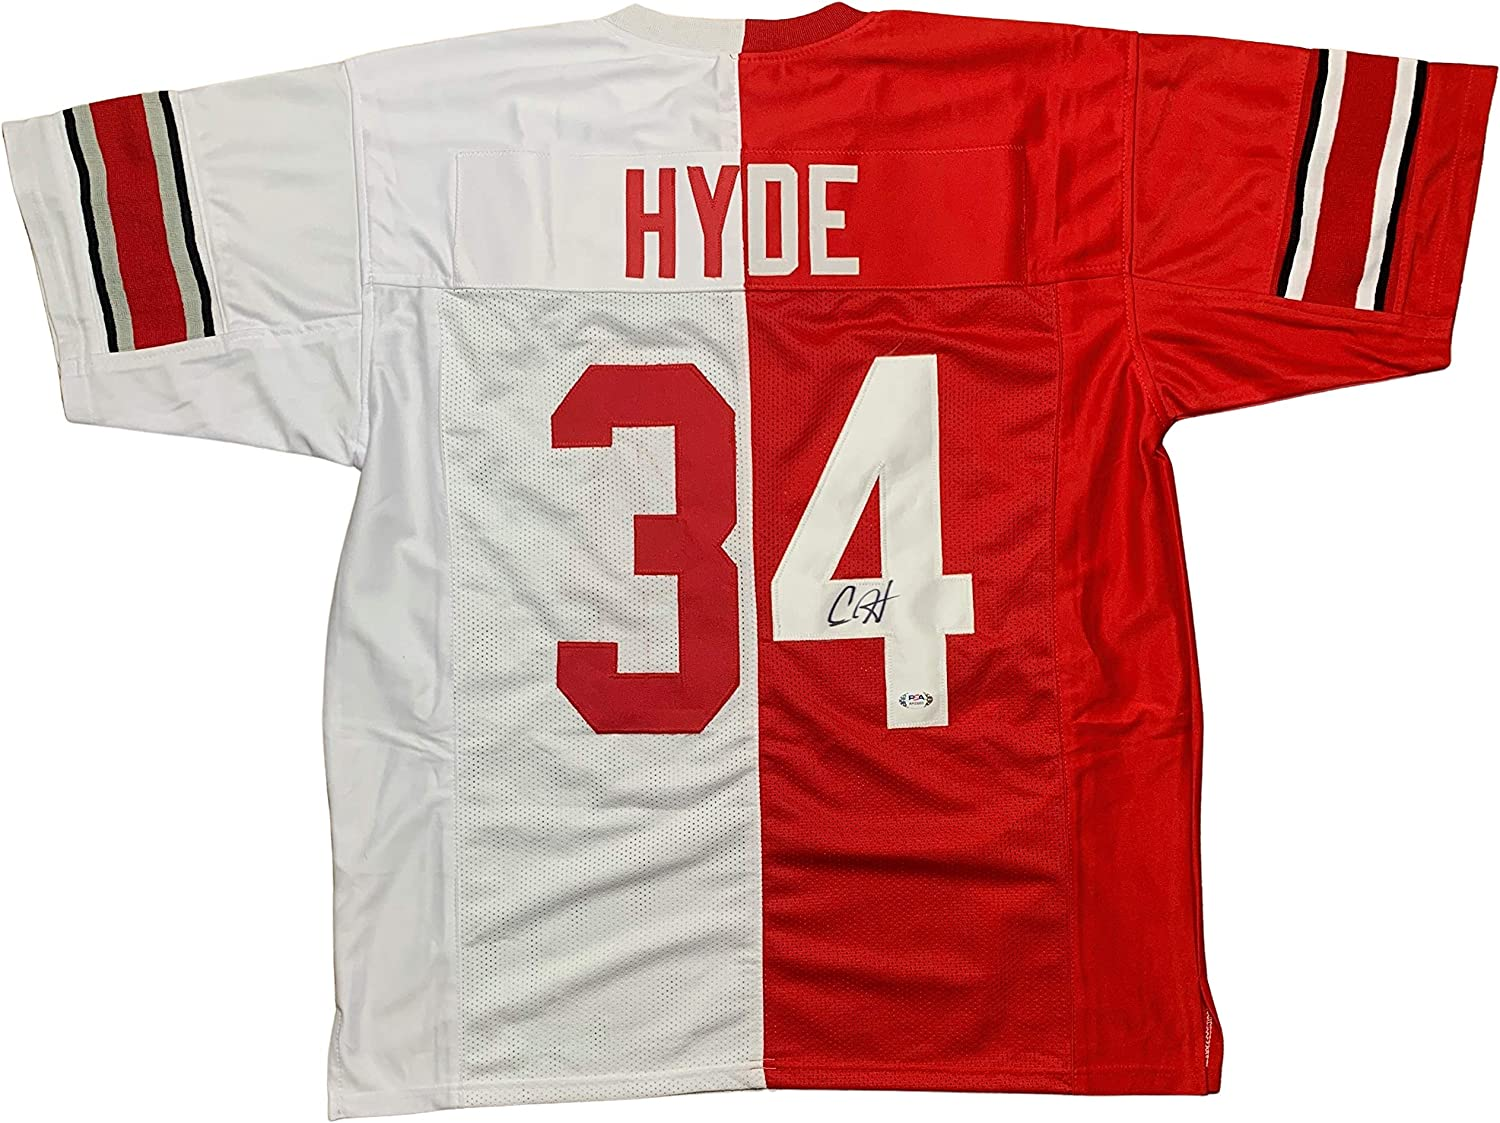 Carlos Hyde autographed signed jersey NCAA Ohio State Buckeyes PSA ...